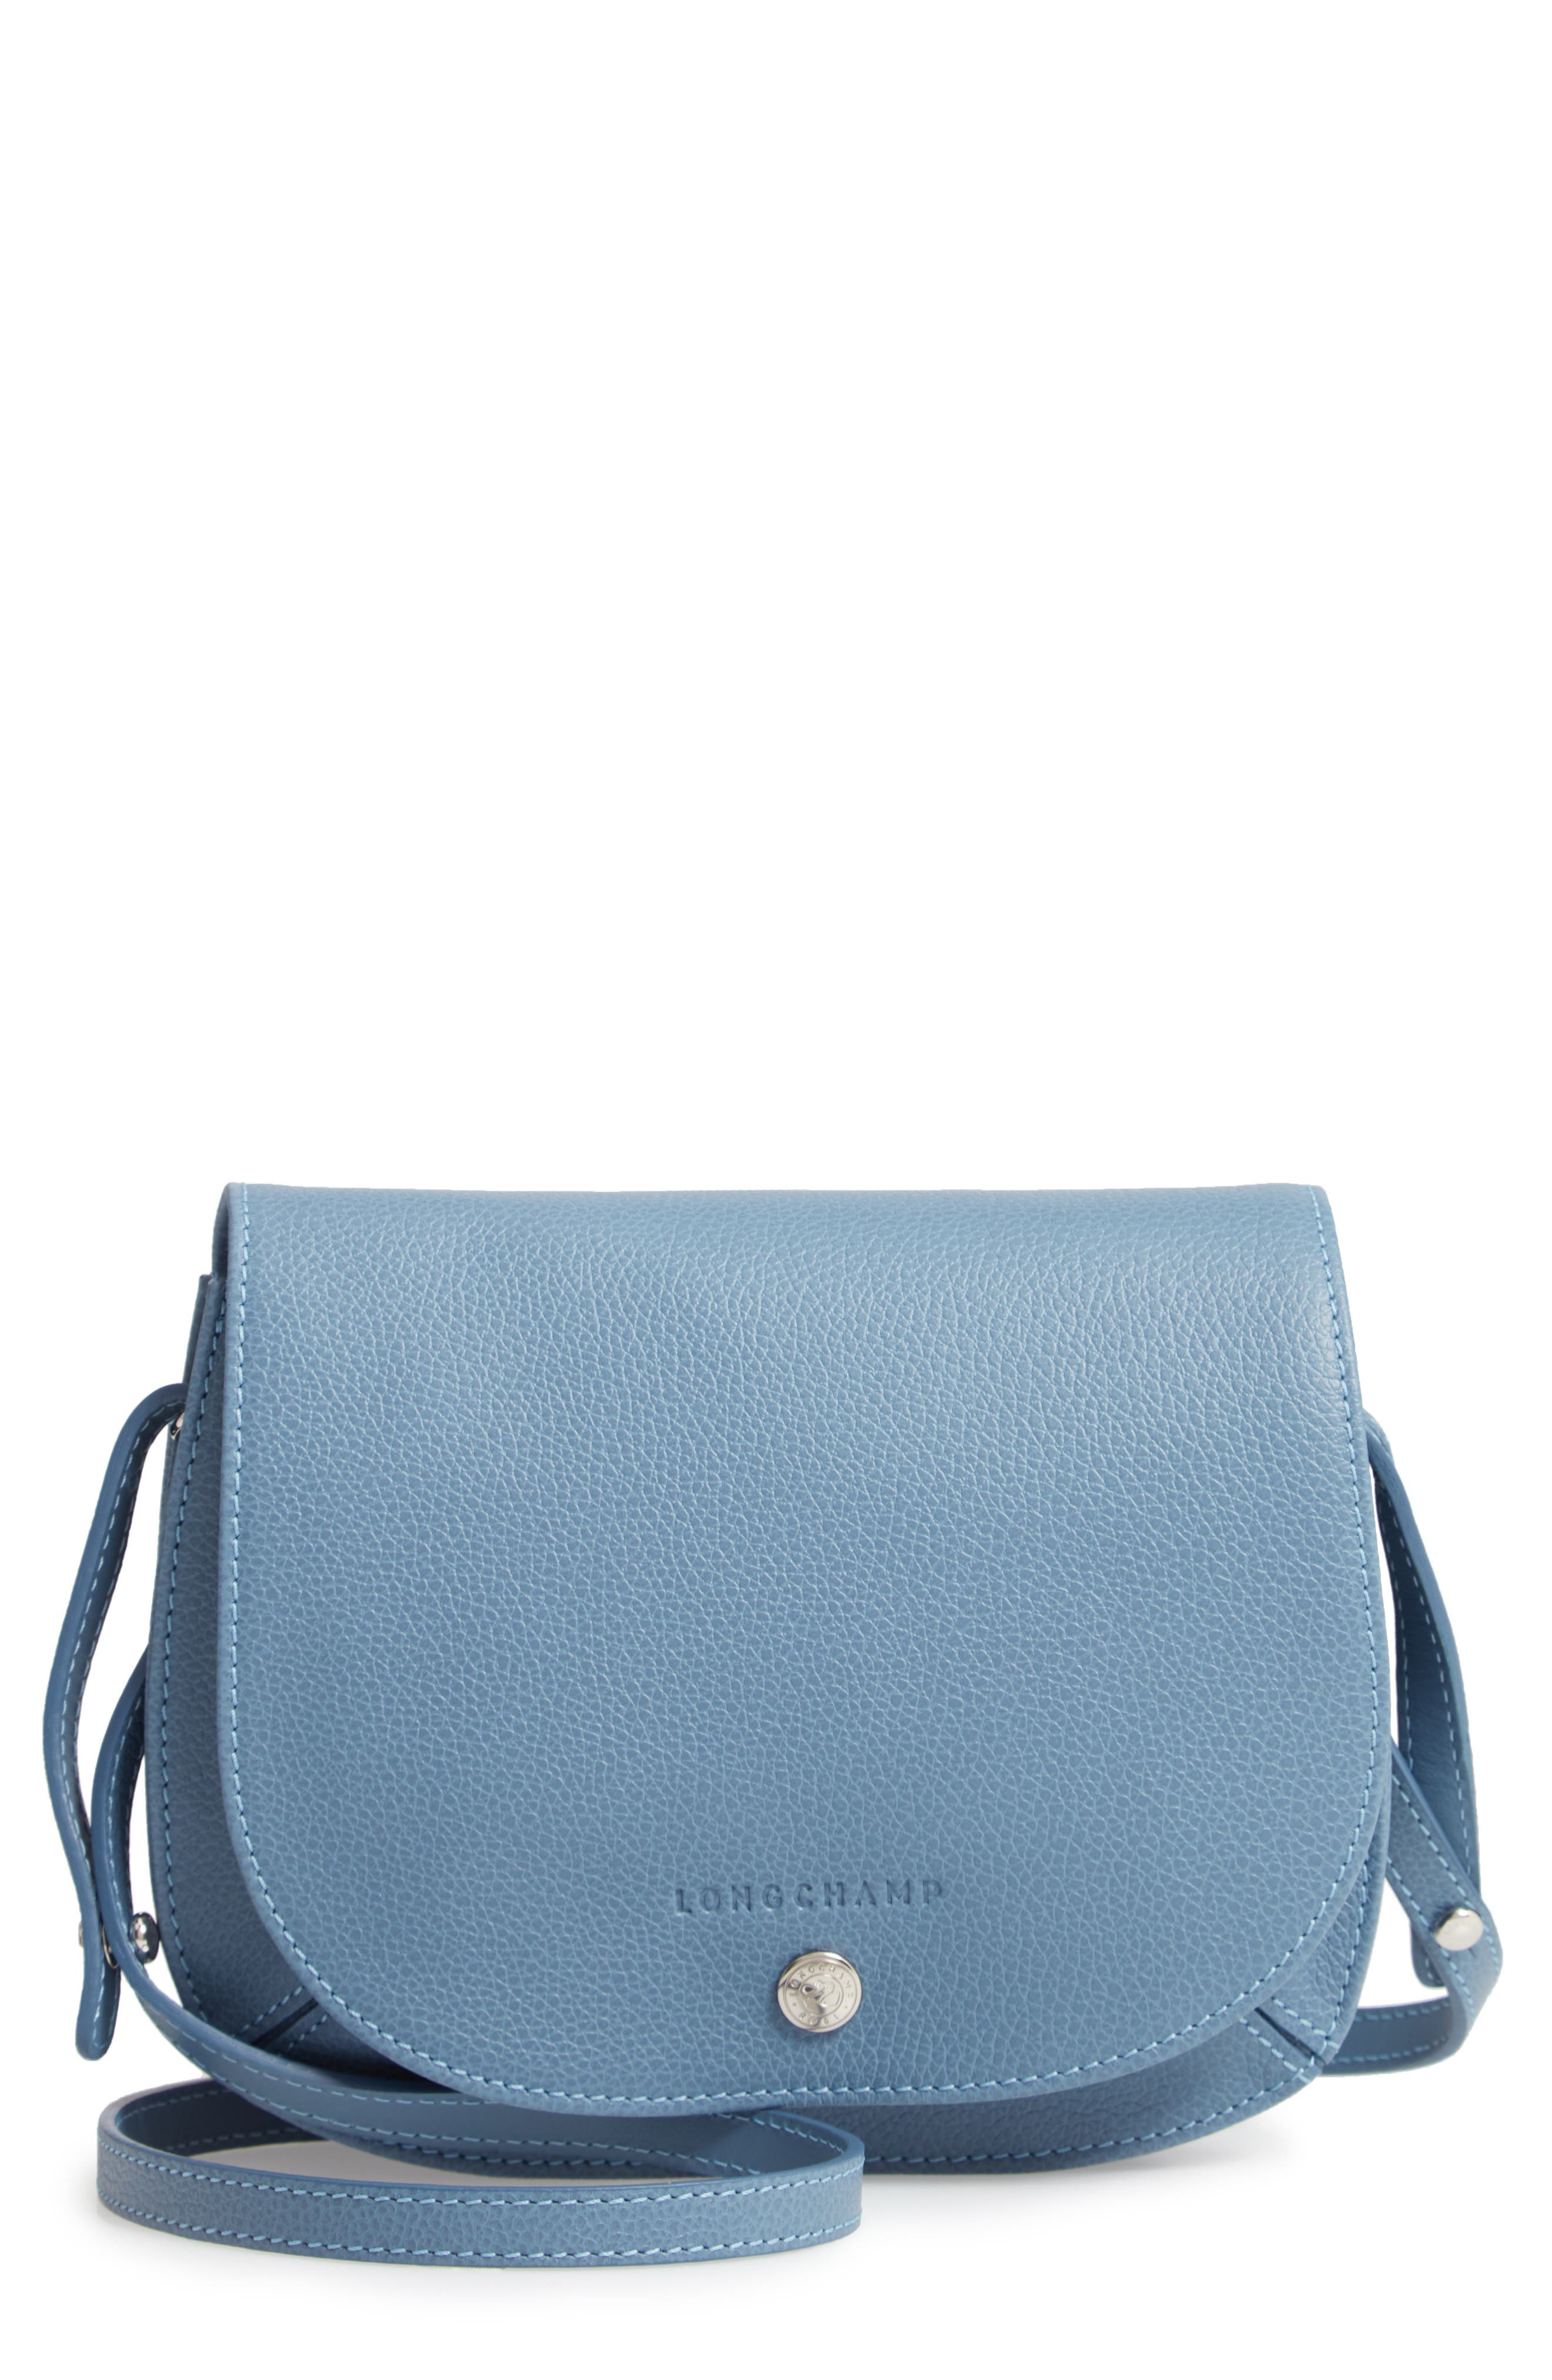 71326adc658f Longchamp Small Le Foulonne Leather Crossbody Bag - Blue In Nordic